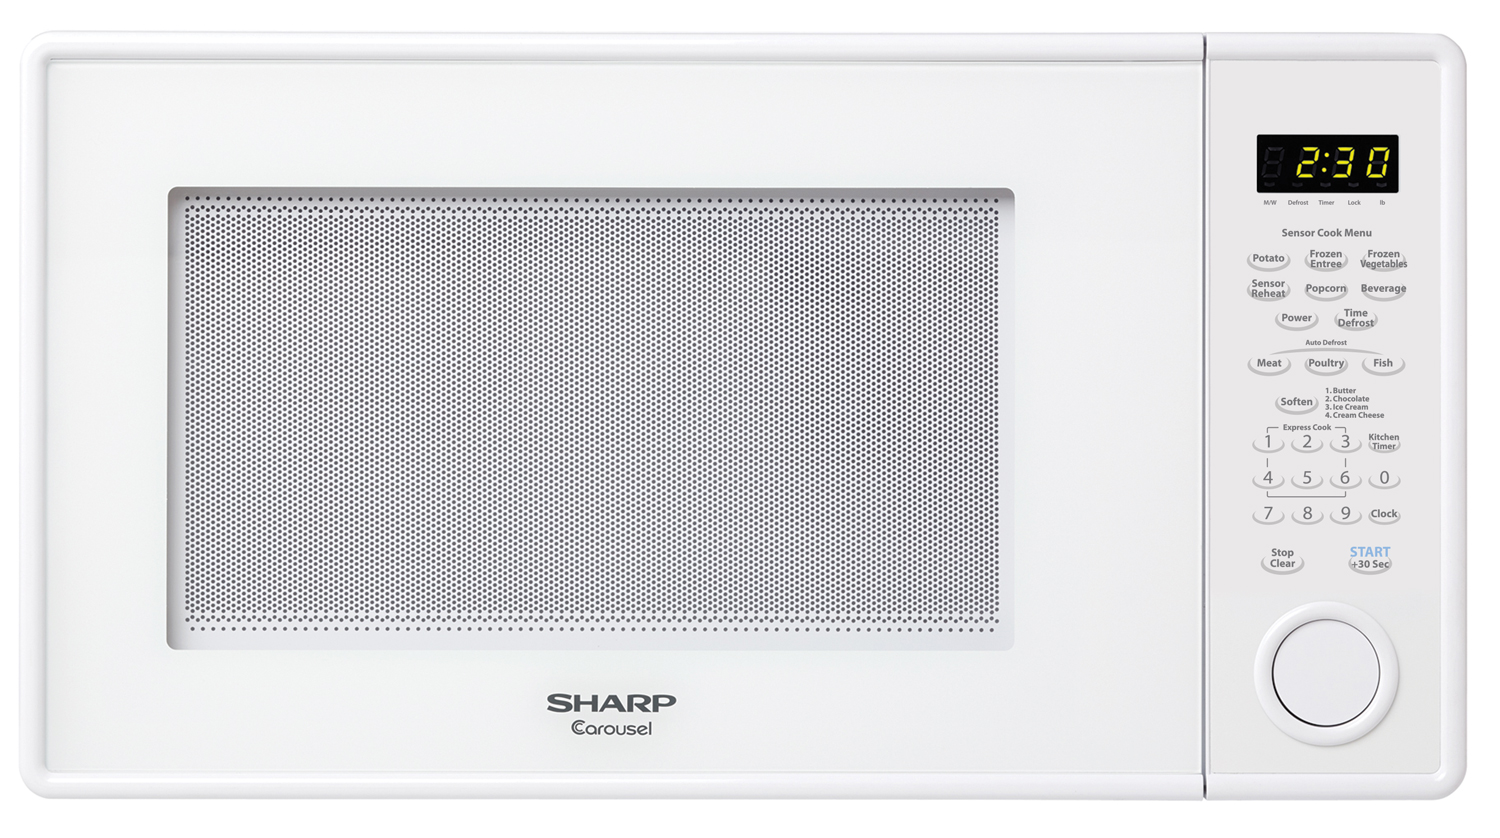 459YW 1.3 Cu Ft Countertop Microwave Oven - SHARP